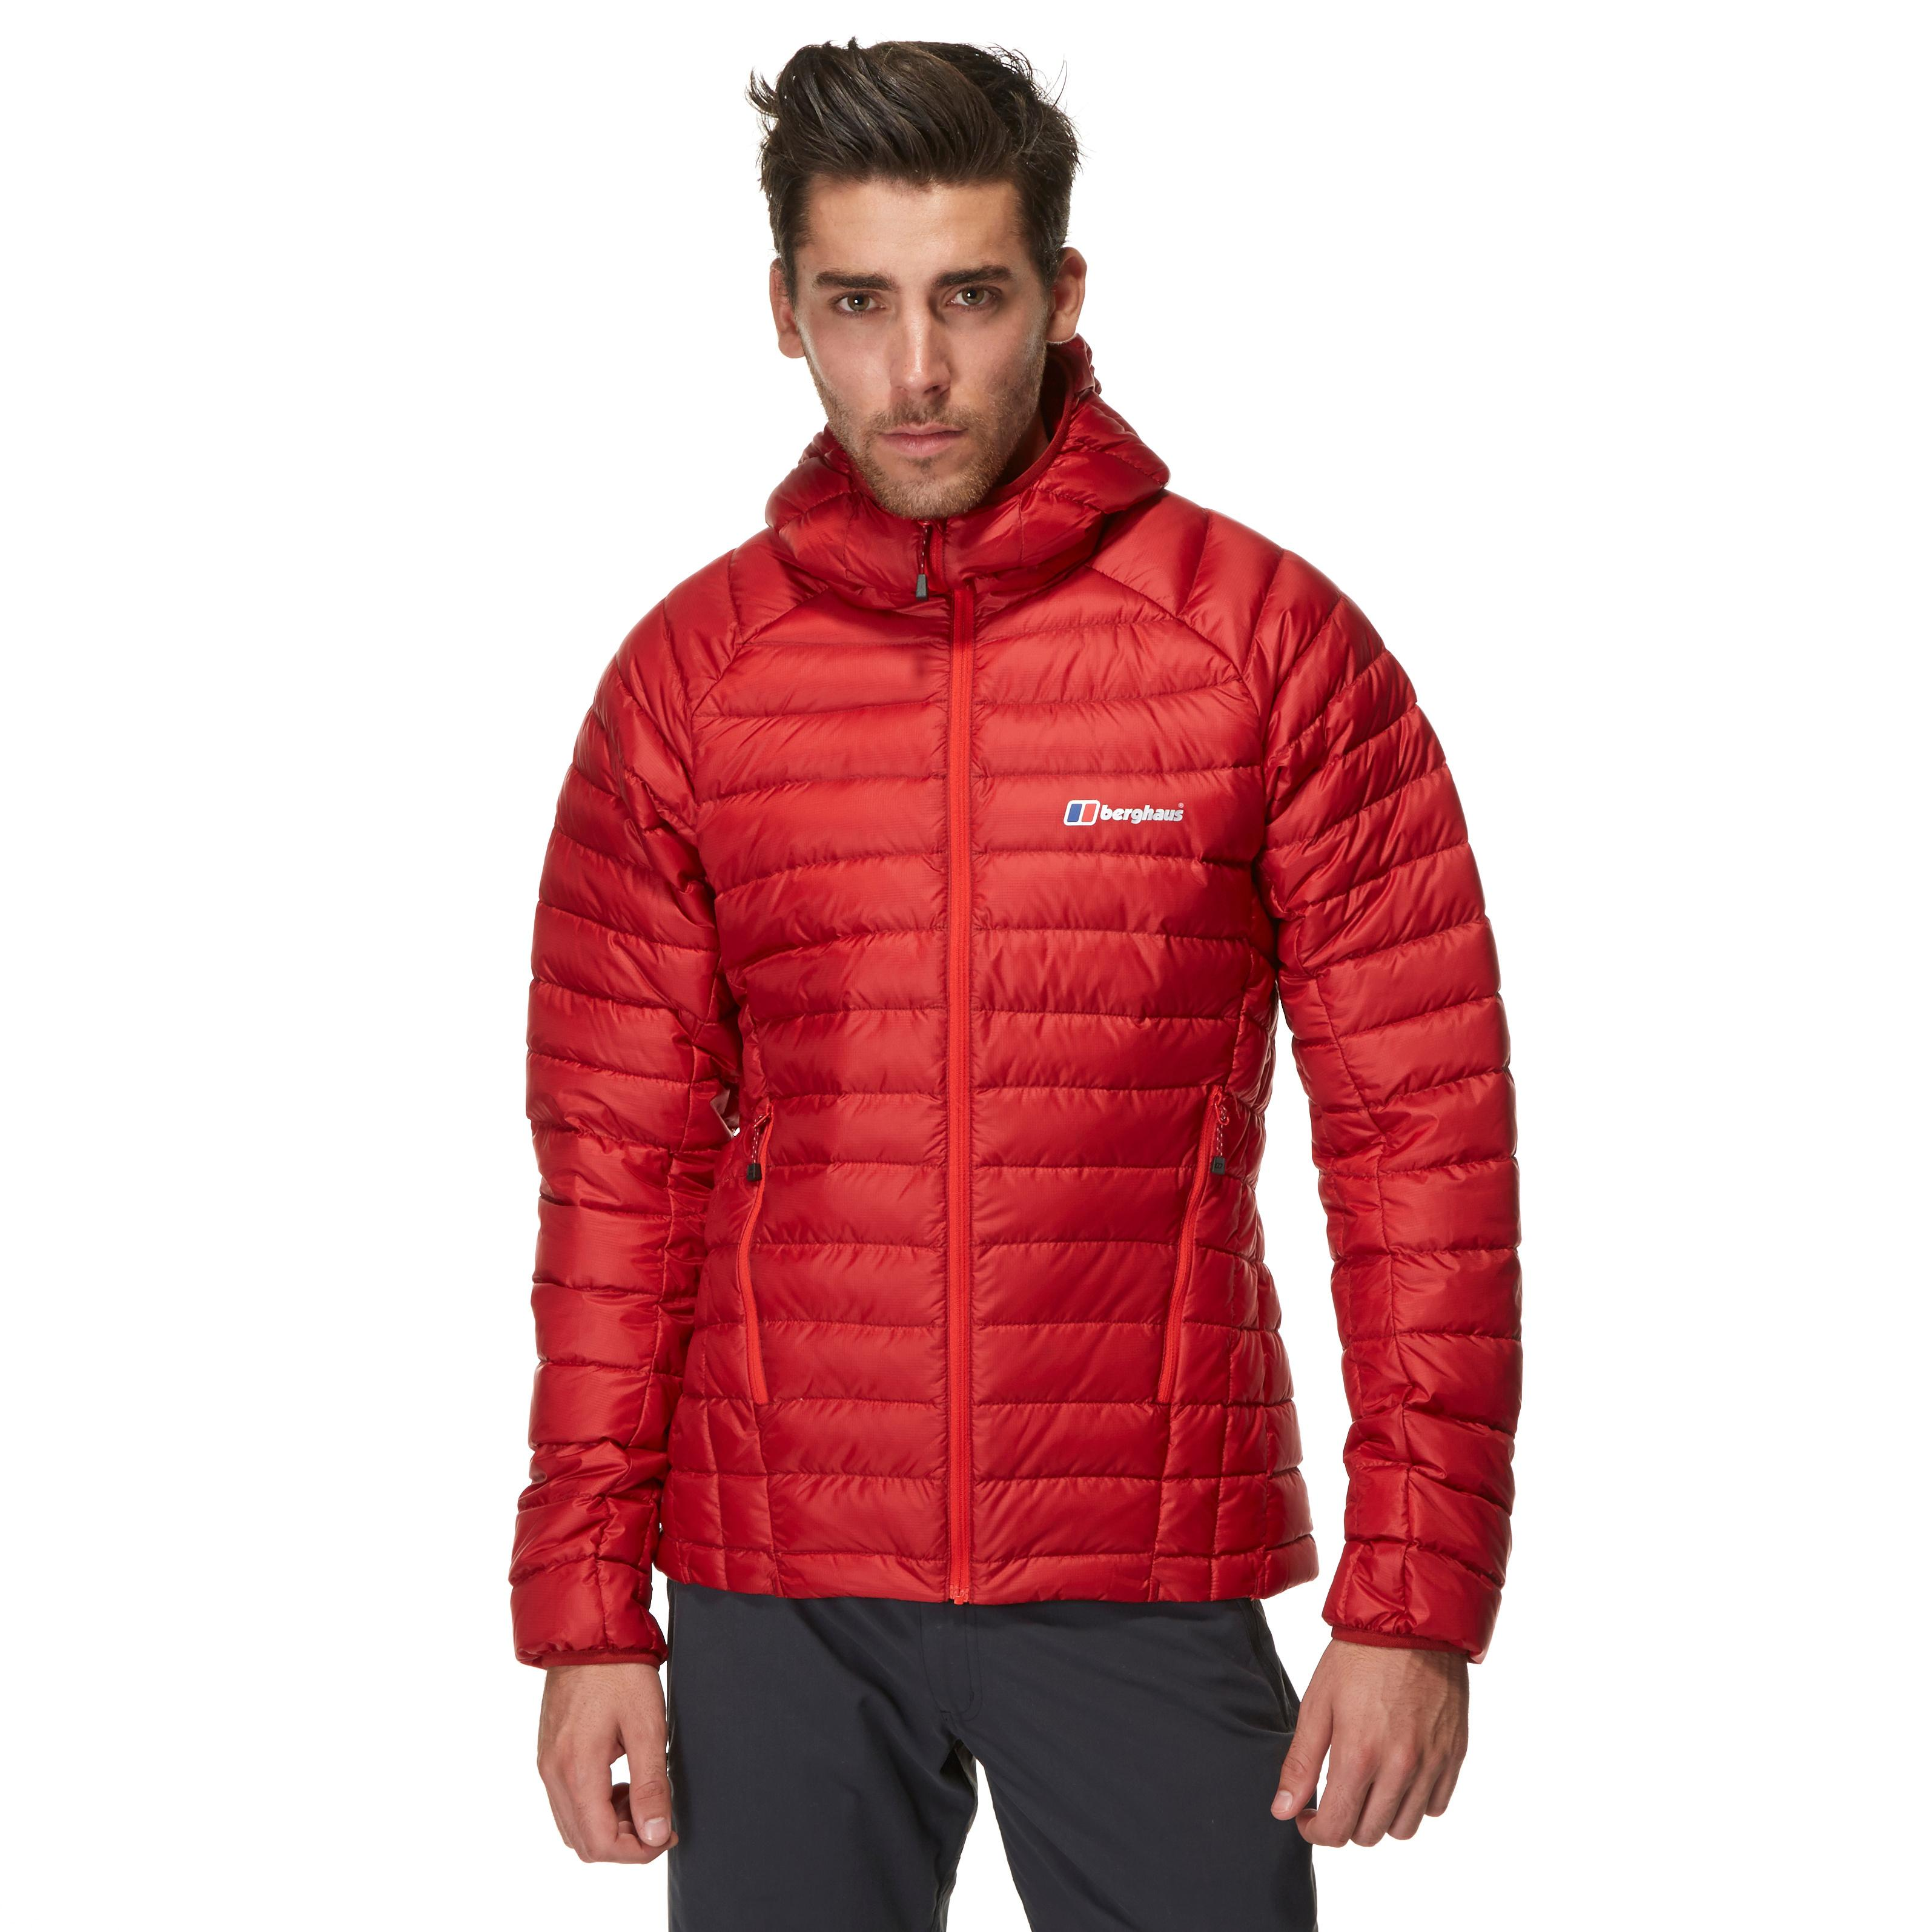 Berghaus Down Jacket Price Comparison Results